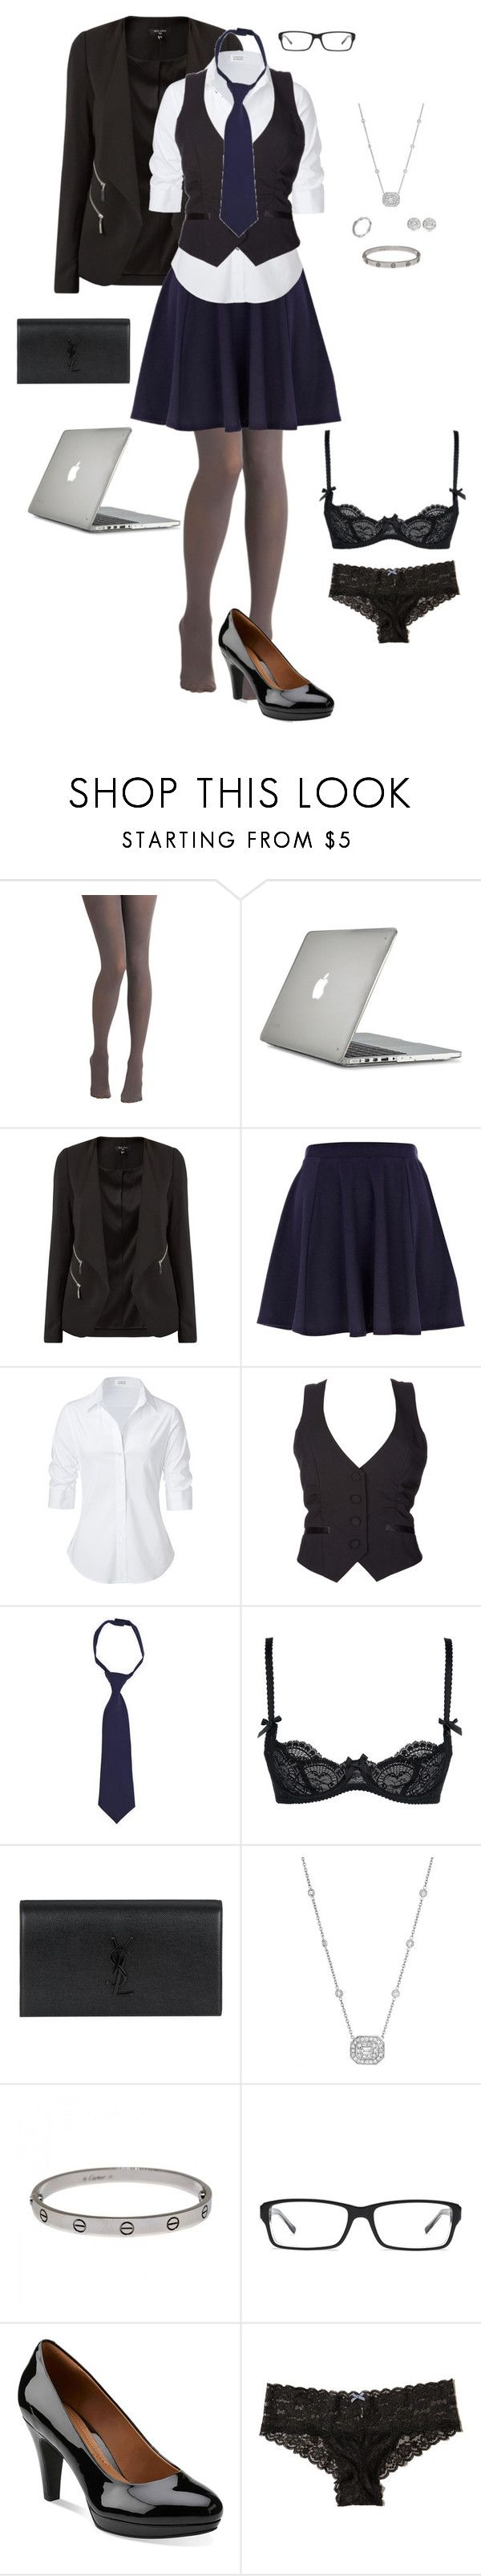 """""""Uniform"""" by gone-girl ❤ liked on Polyvore featuring Tulle Clothing, Speck, New Look, River Island, Steffen Schraut, Charlotte Russe, French Toast, L'Agent By Agent Provocateur, Yves Saint Laurent and Penny Preville"""